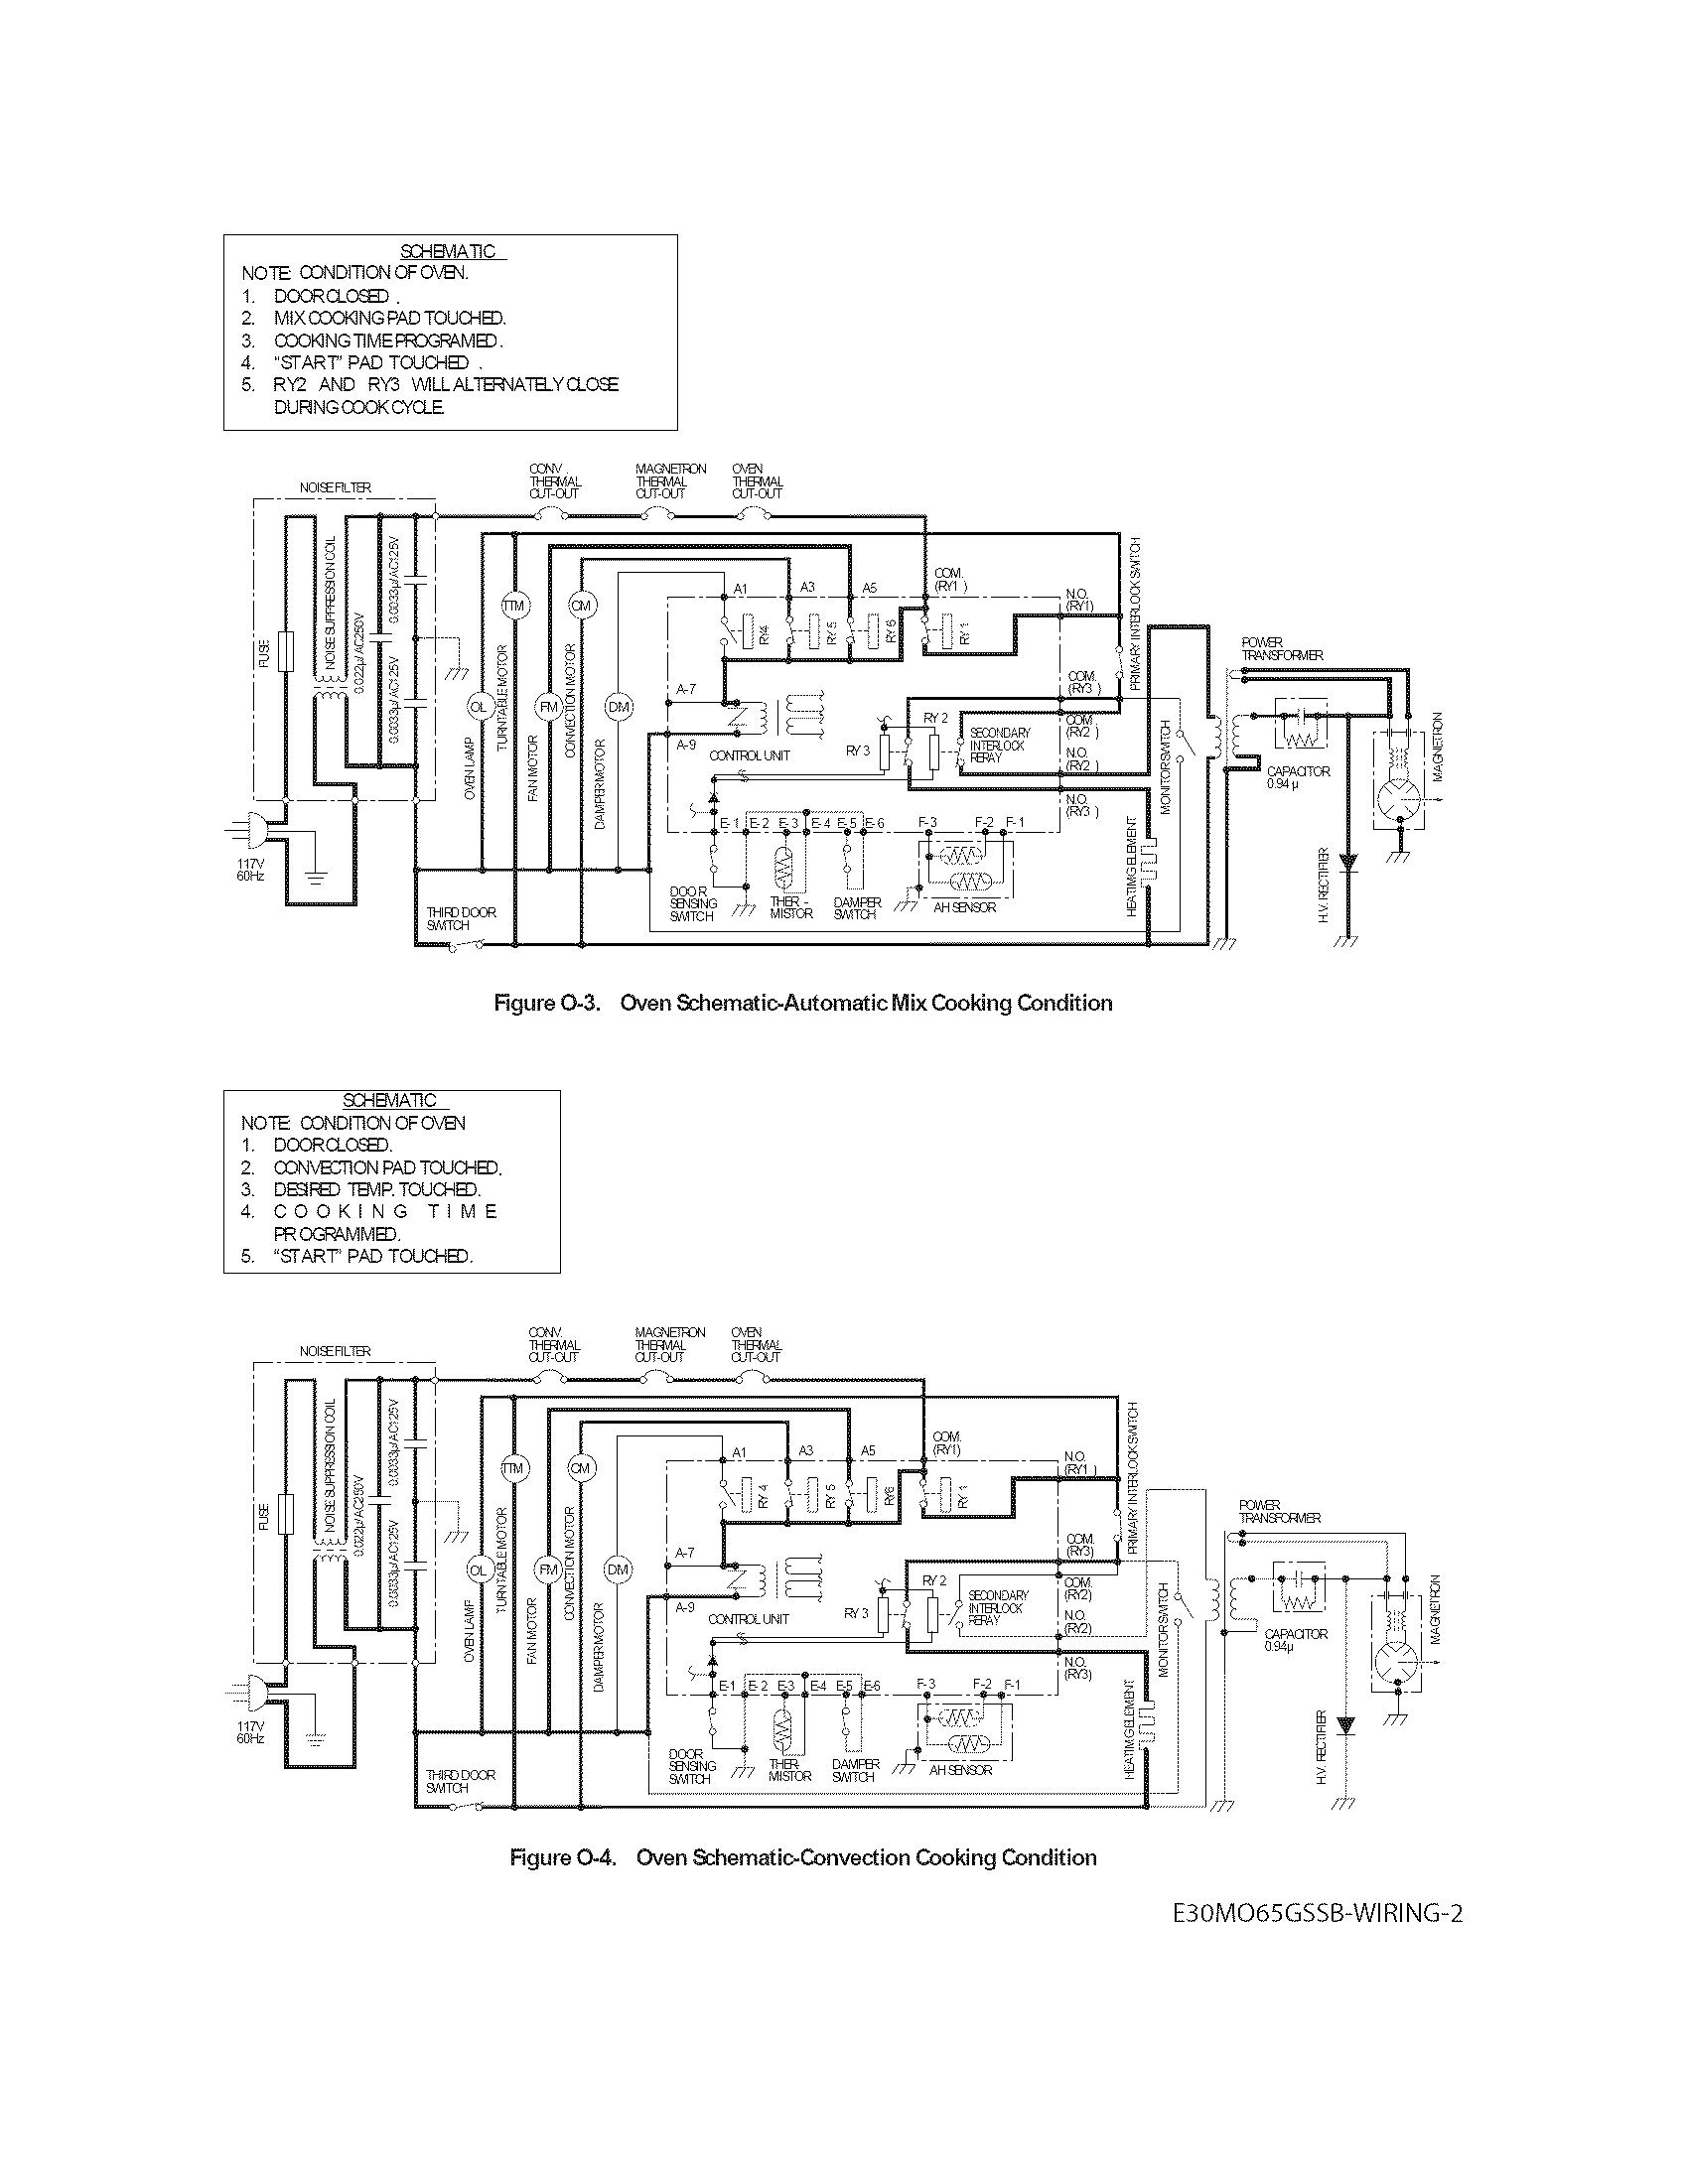 Electrolux E30MO65GSSB wiring schematic diagram